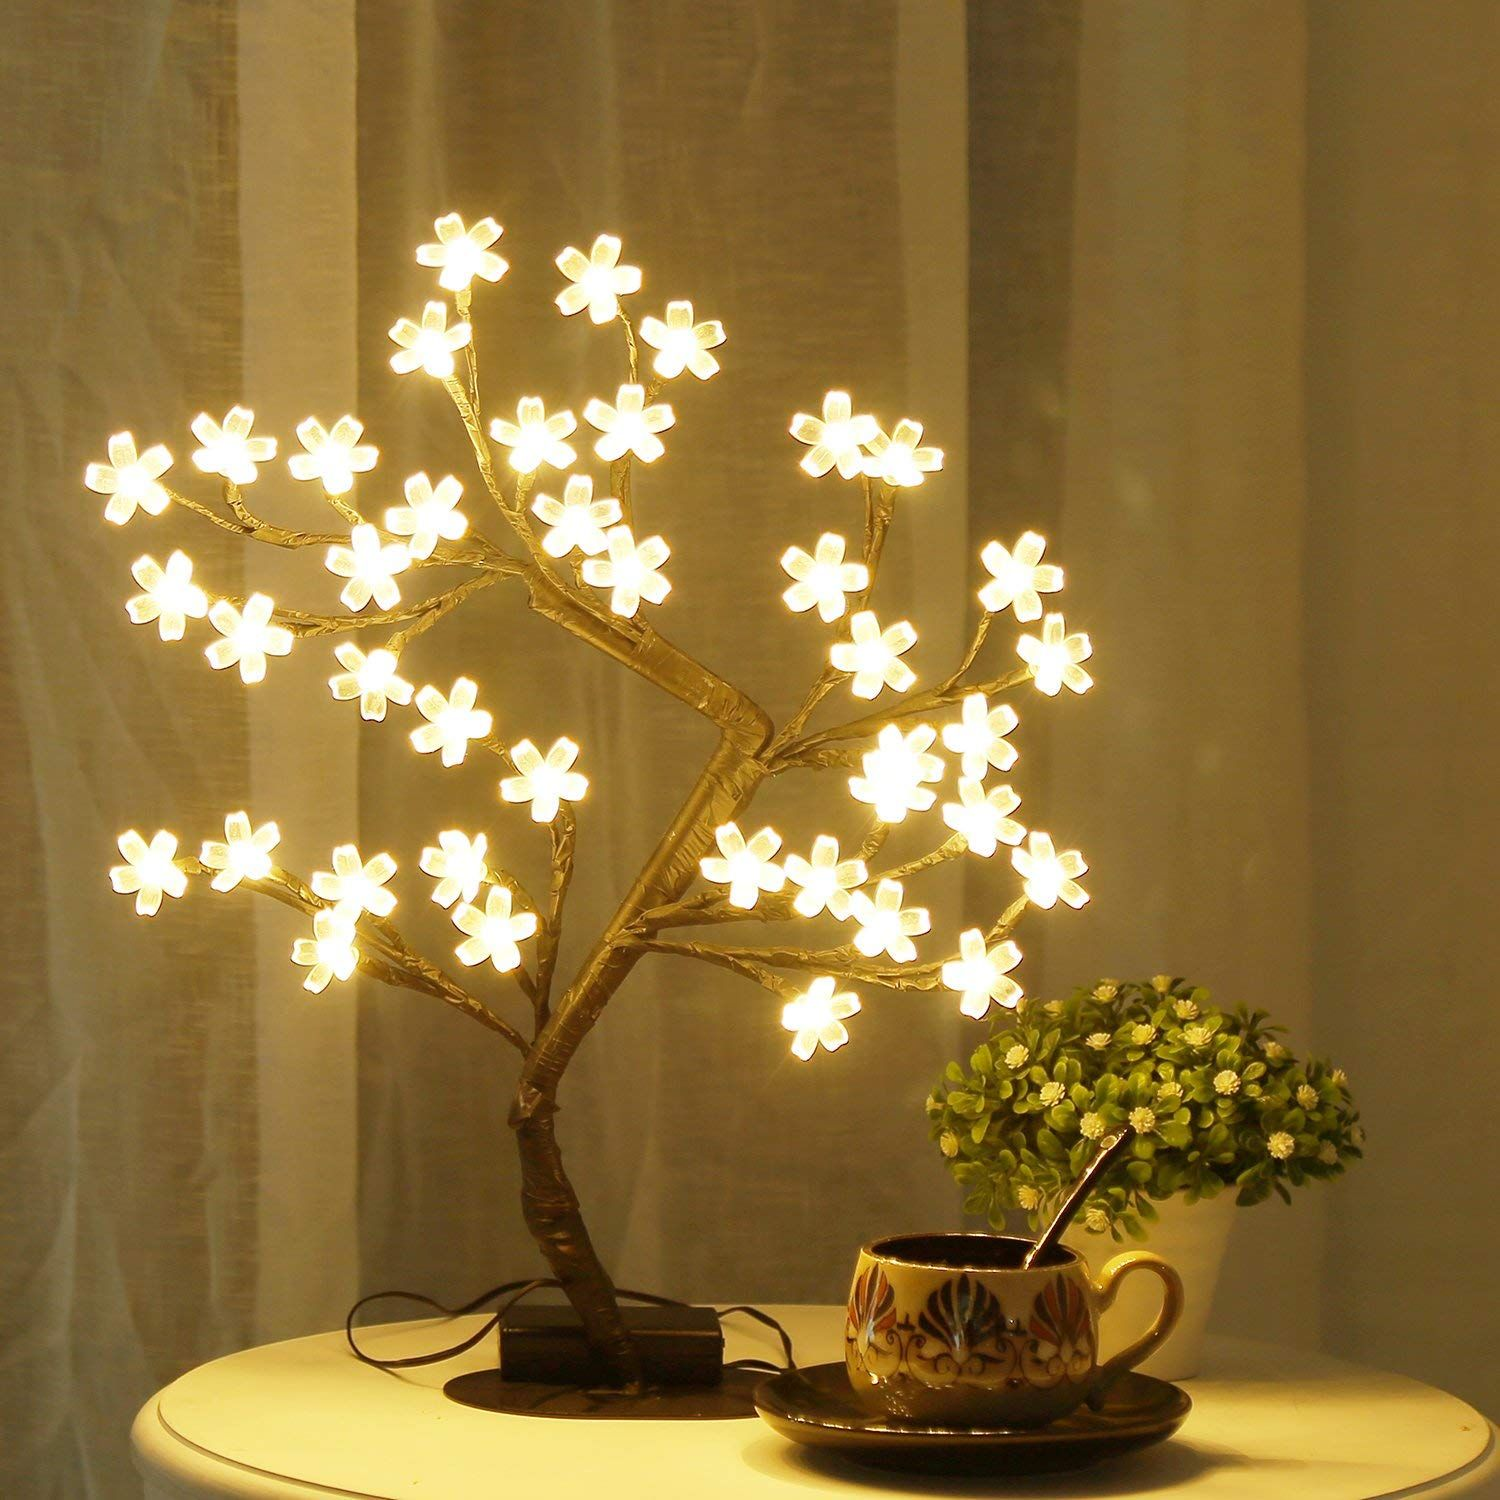 Bolylight Led Cherry Blossom Tree Table Lamp 16 73 40l Centerpiece Indoor And Outdoor Decoration Tree Lamp Tree Lighting Table Lamp